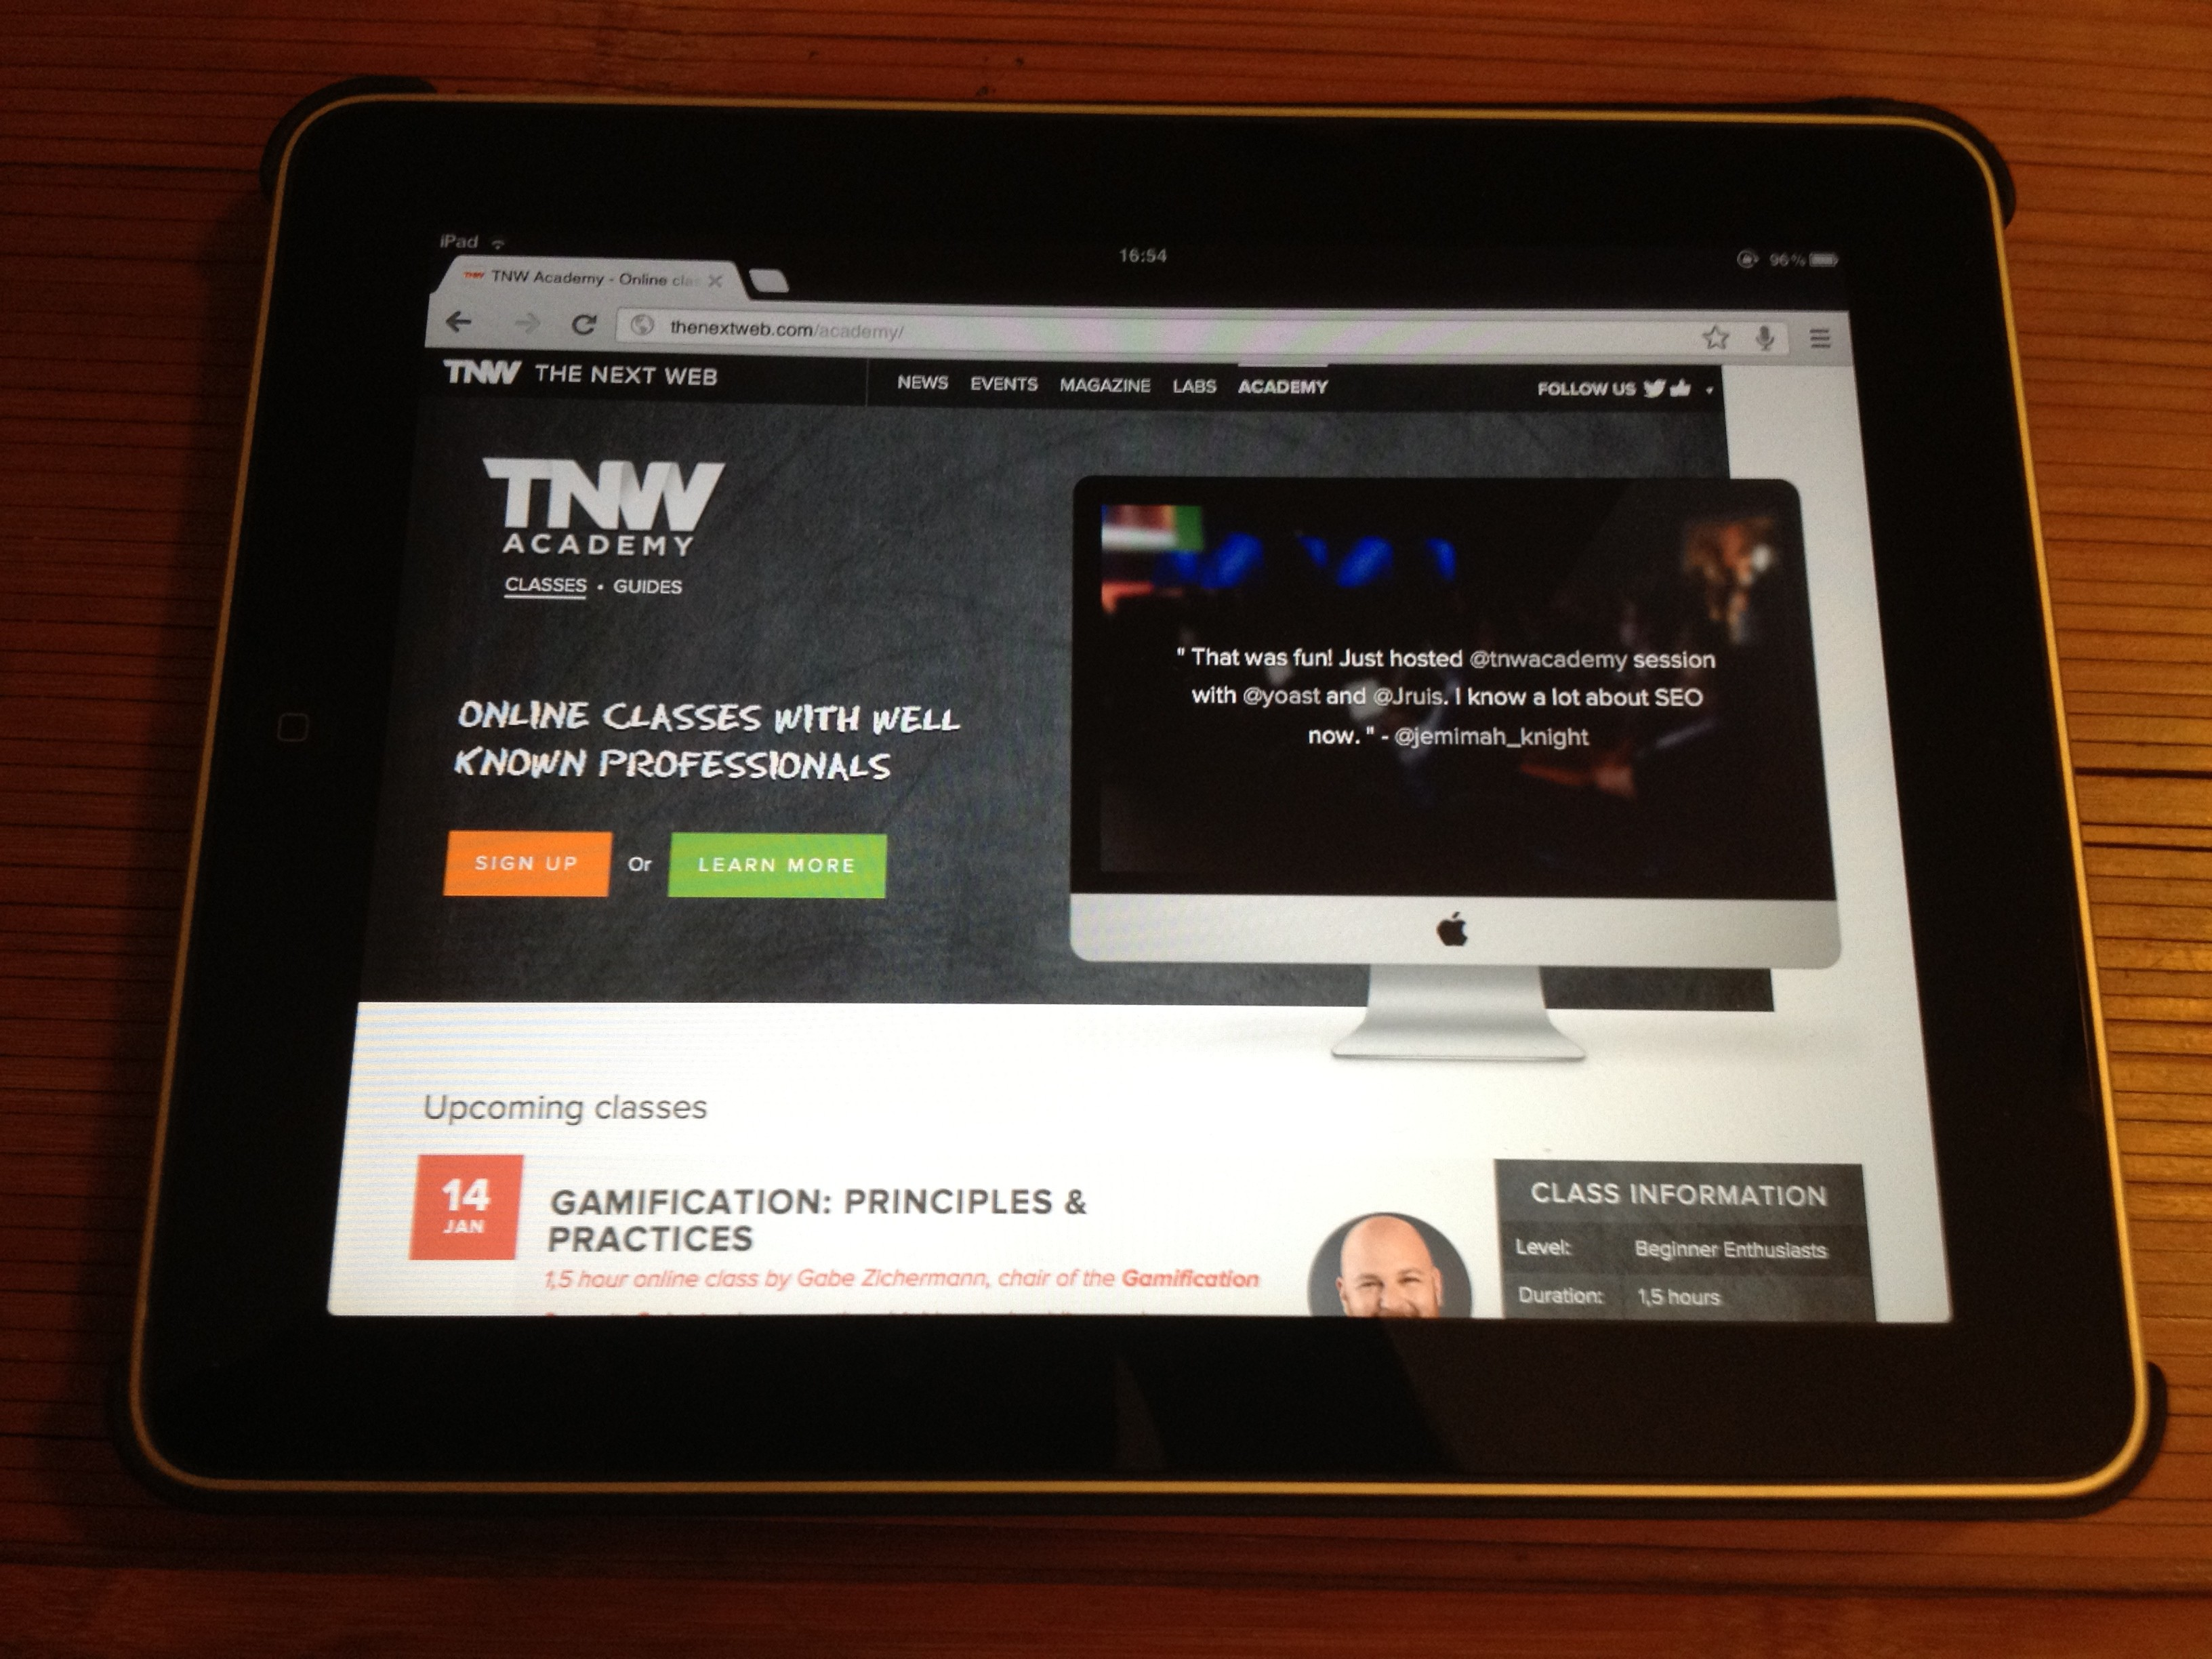 tnw academy classes and guide1 e1356729995699 From Internet freedom to TNW Conference: A year at The Next Web